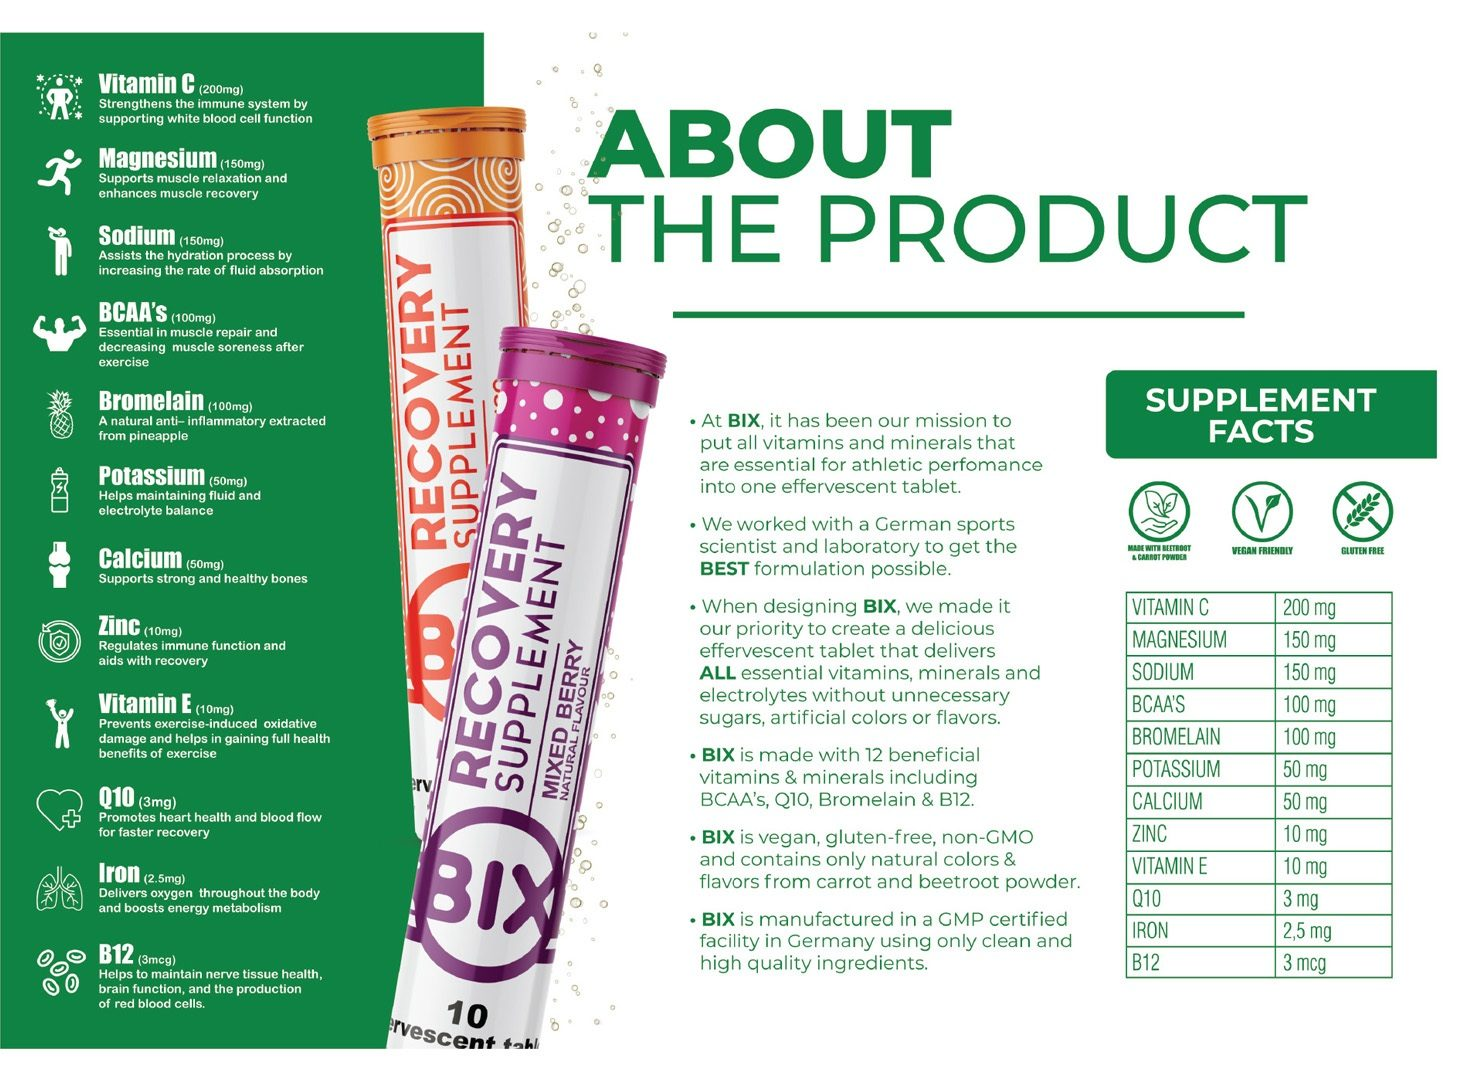 Bix includes 12 essential vitamins, minerals and electrolytes in just 1 effervescent tablet.